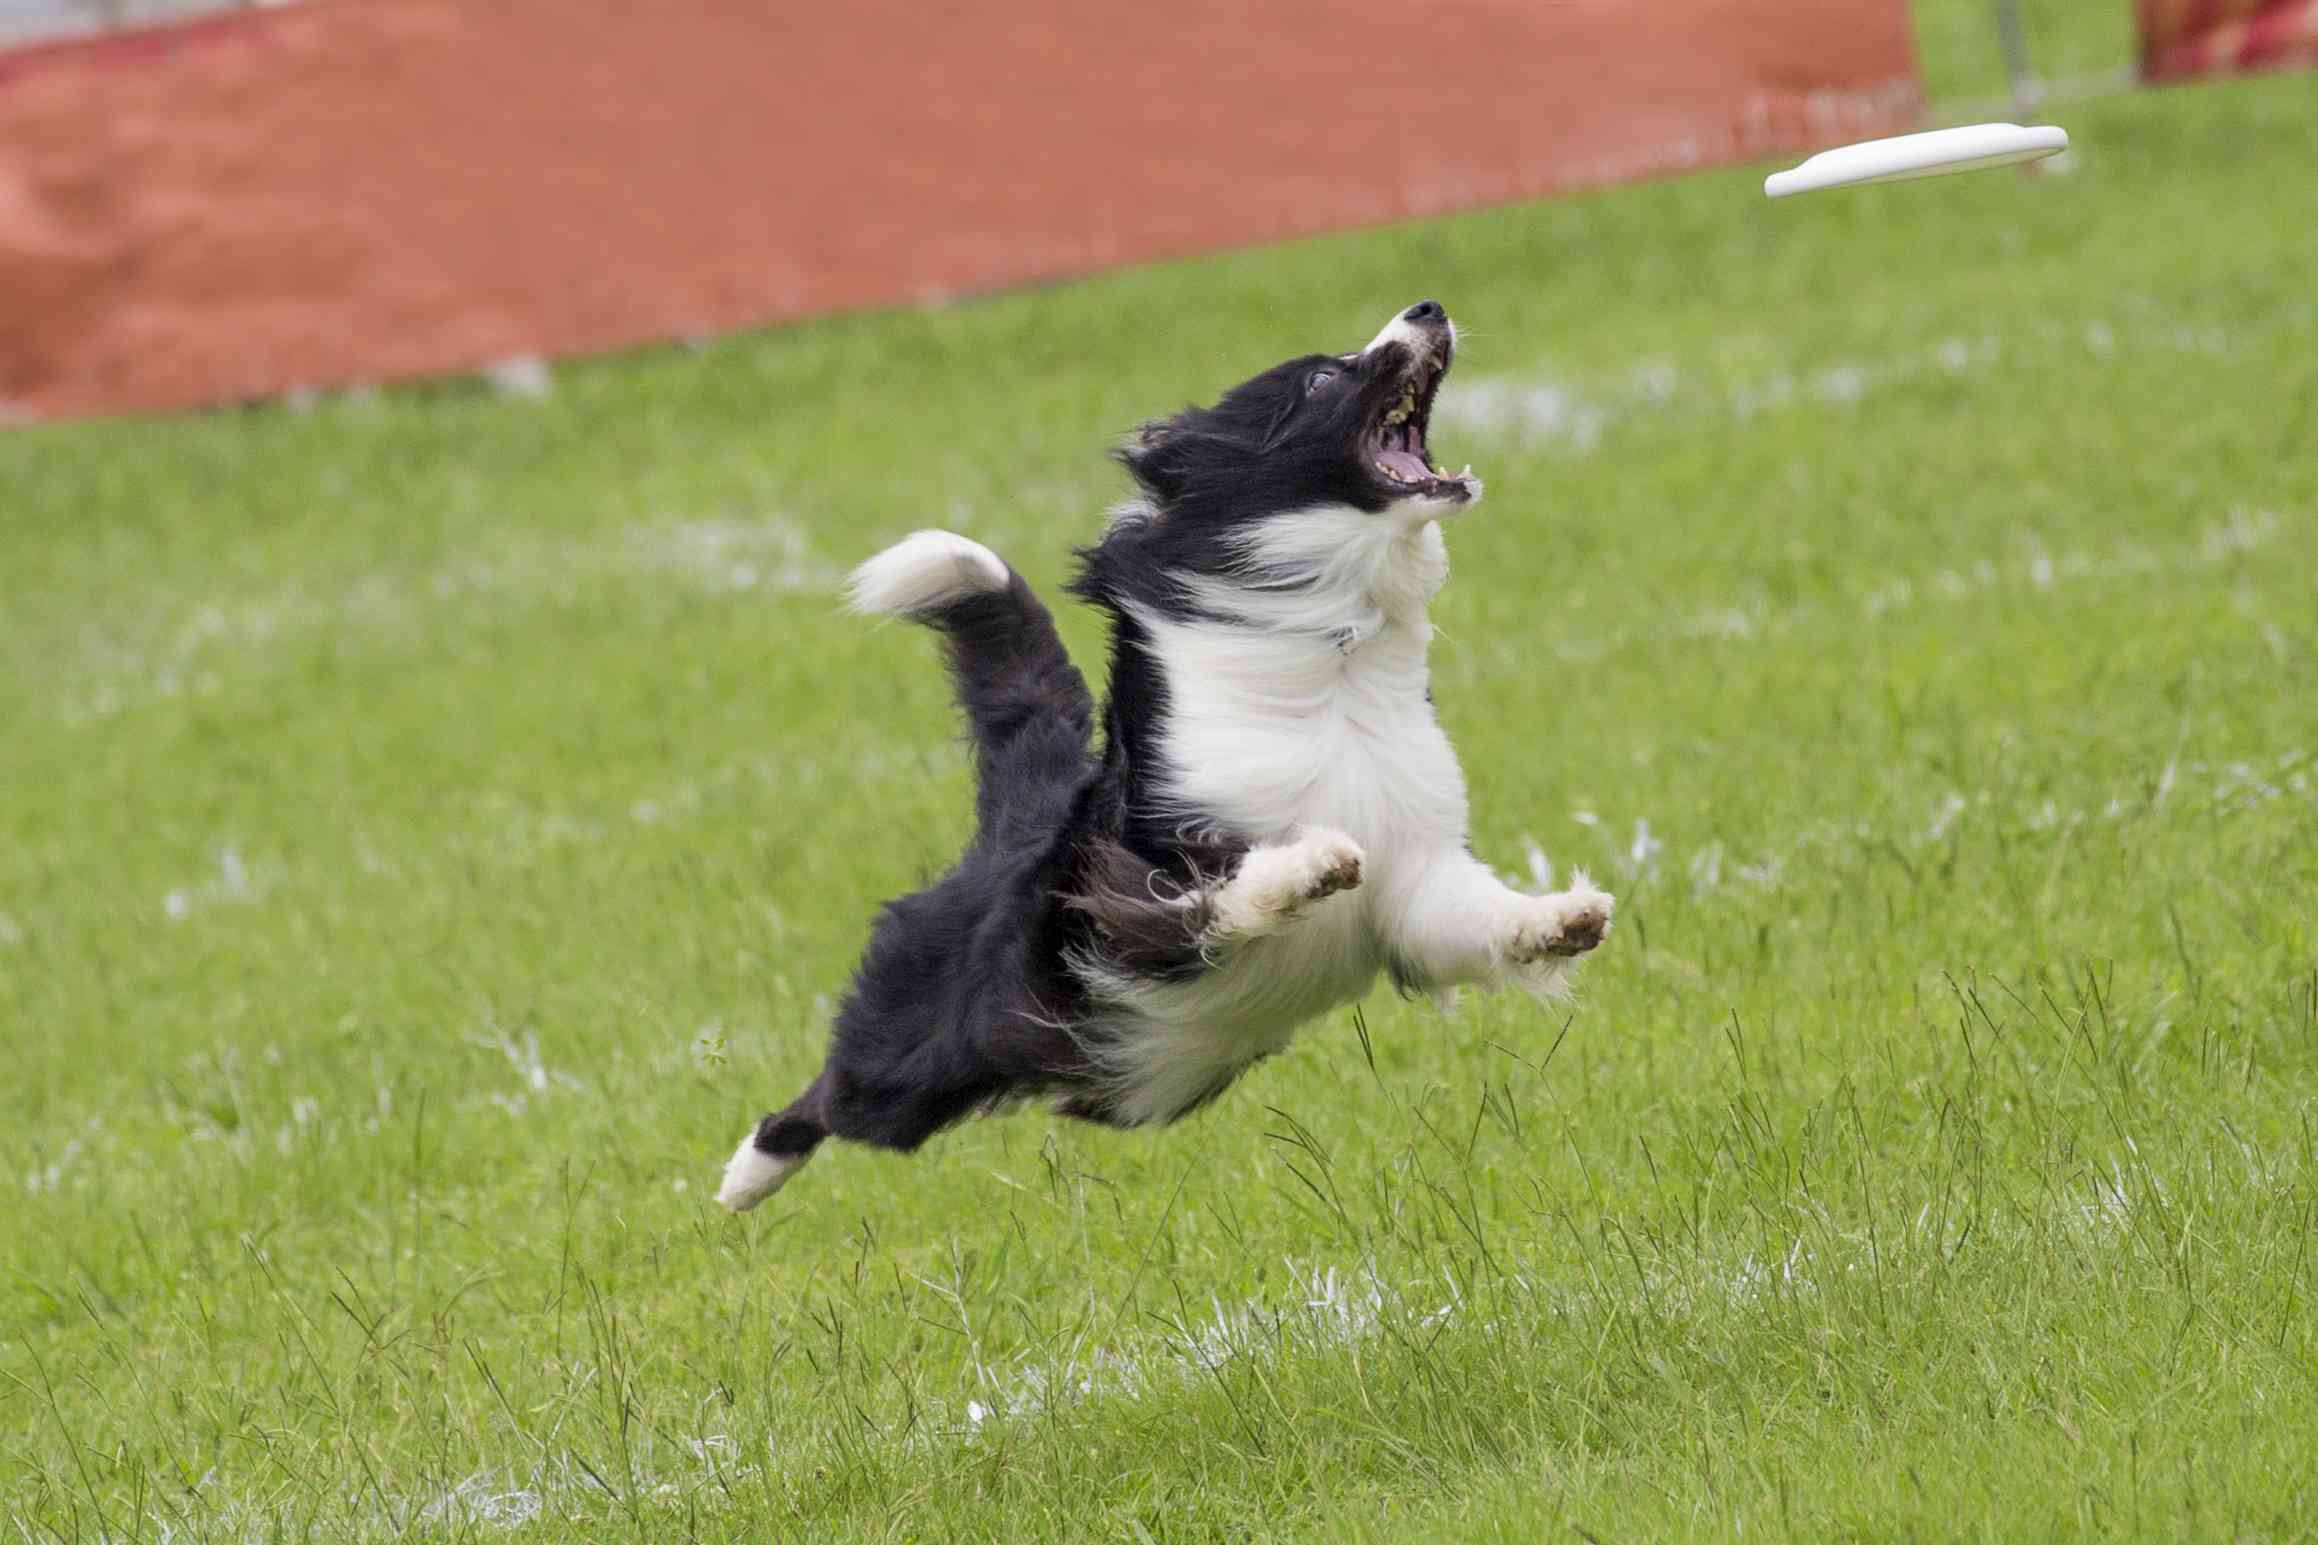 border collie catching a frisbee on grass